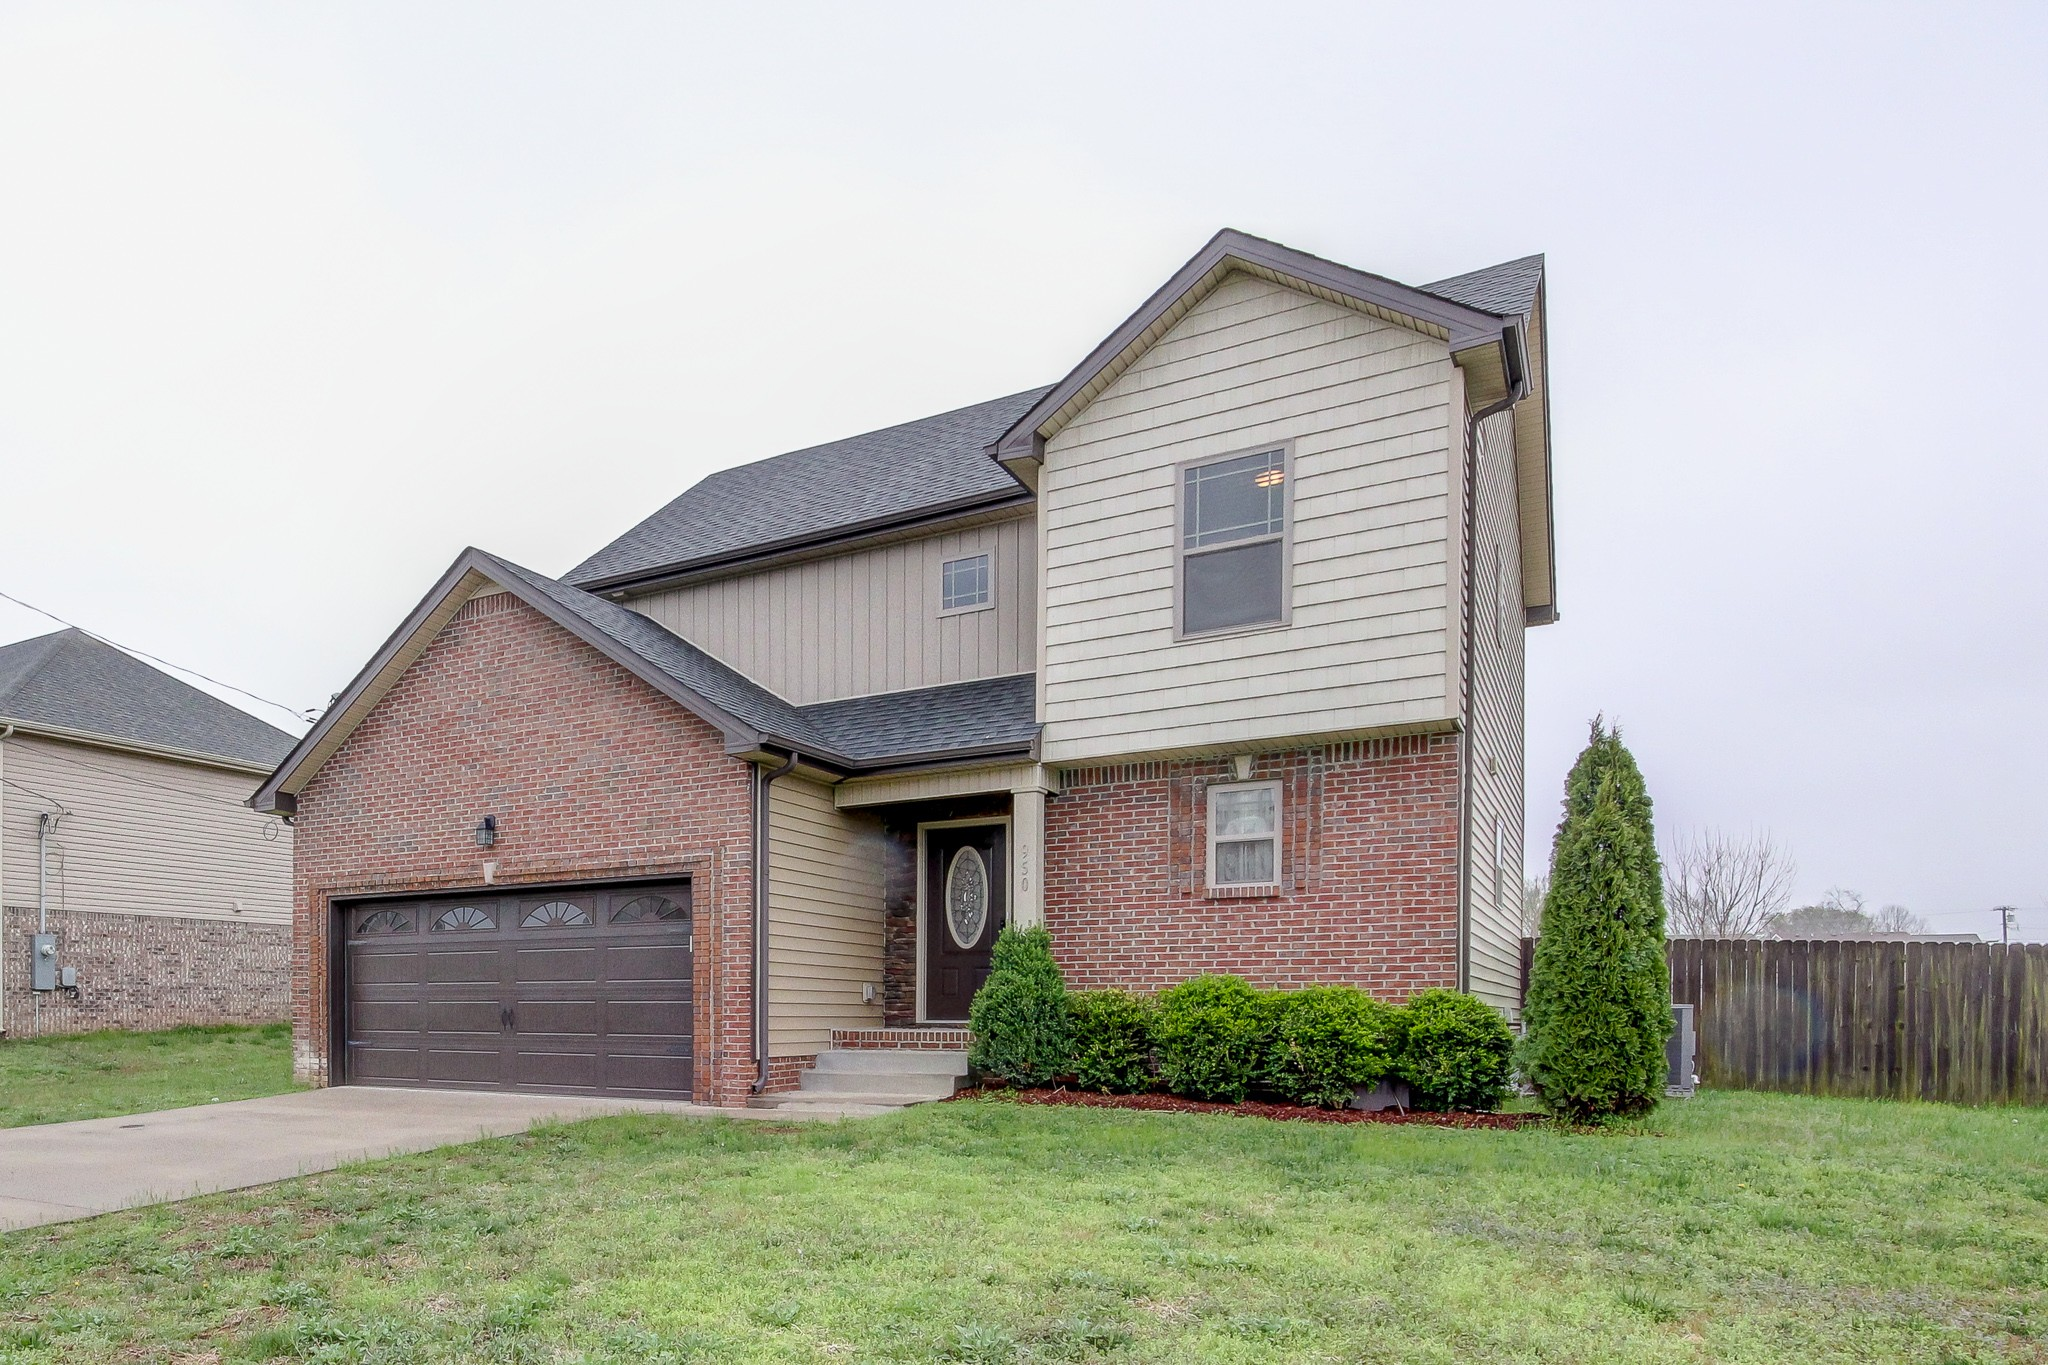 950 Silty Dr, Clarksville, TN 37042 - Clarksville, TN real estate listing